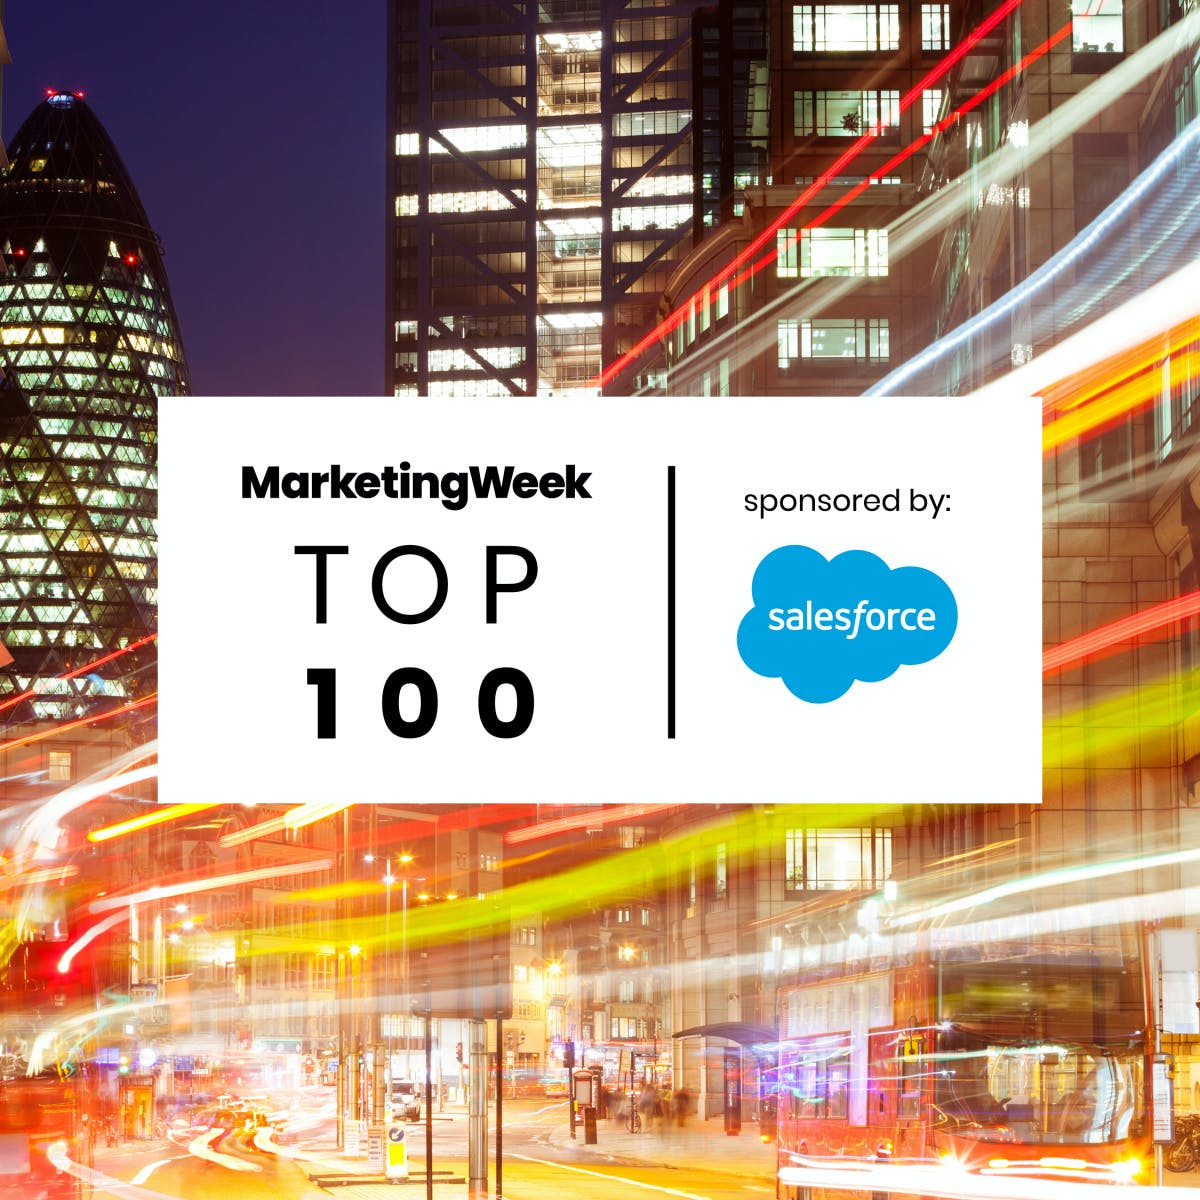 Marketing Week Top 100: Meet the judges